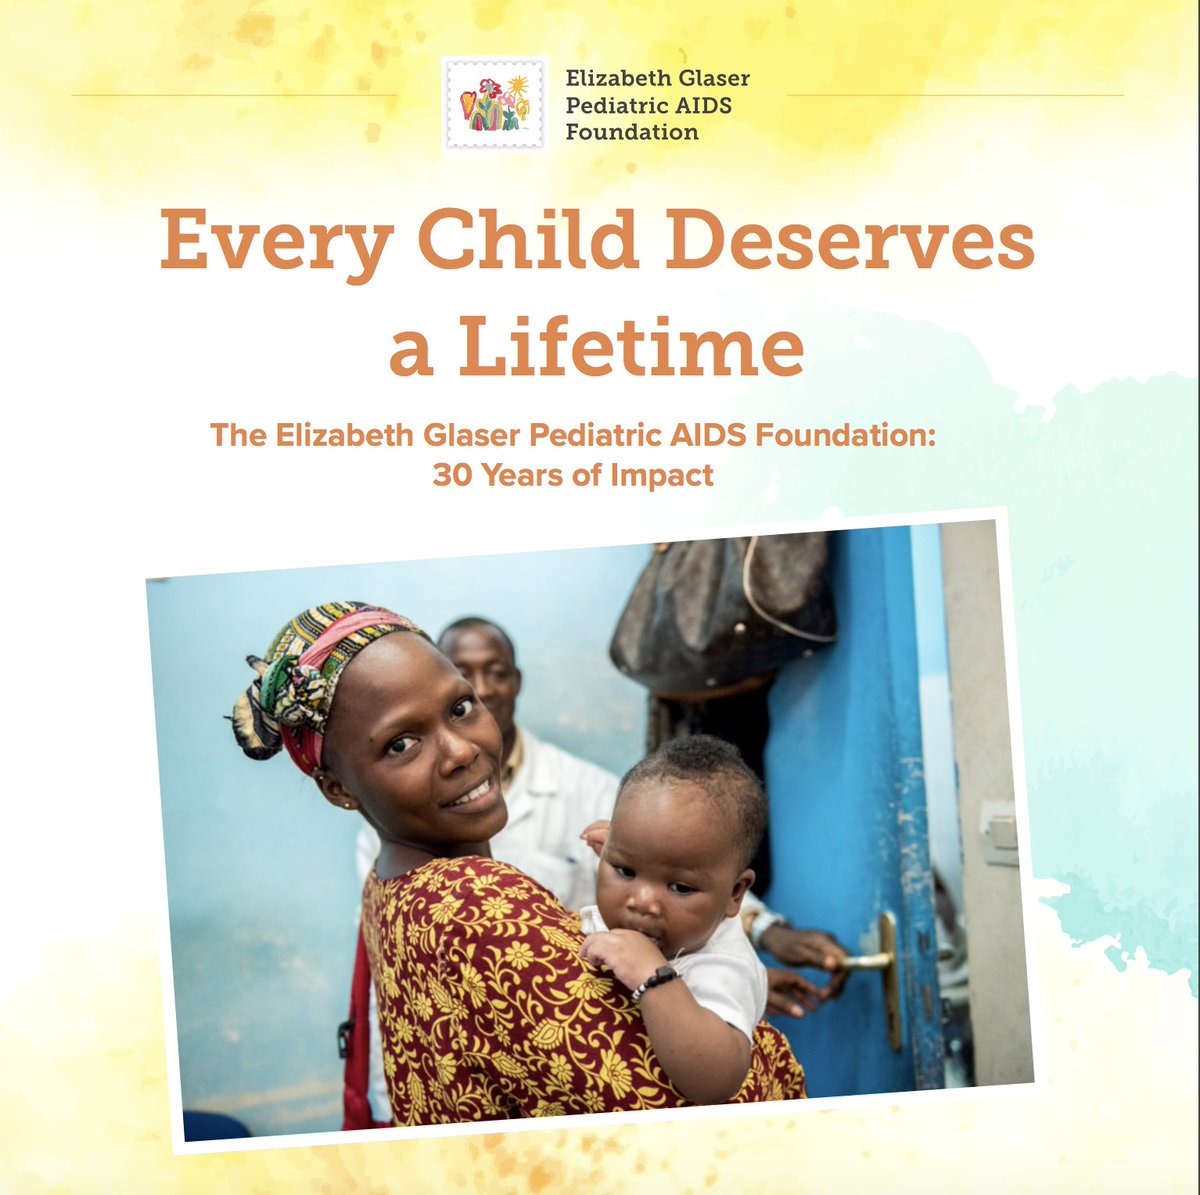 Every child deserves a lifetime. As @EGPAF celebrates its 30th anniversary - we are more committed than ever to ending #AIDS in children. Read more: https://t.co/qDTBw6YlRB #AIDS20182#EGPAF30018